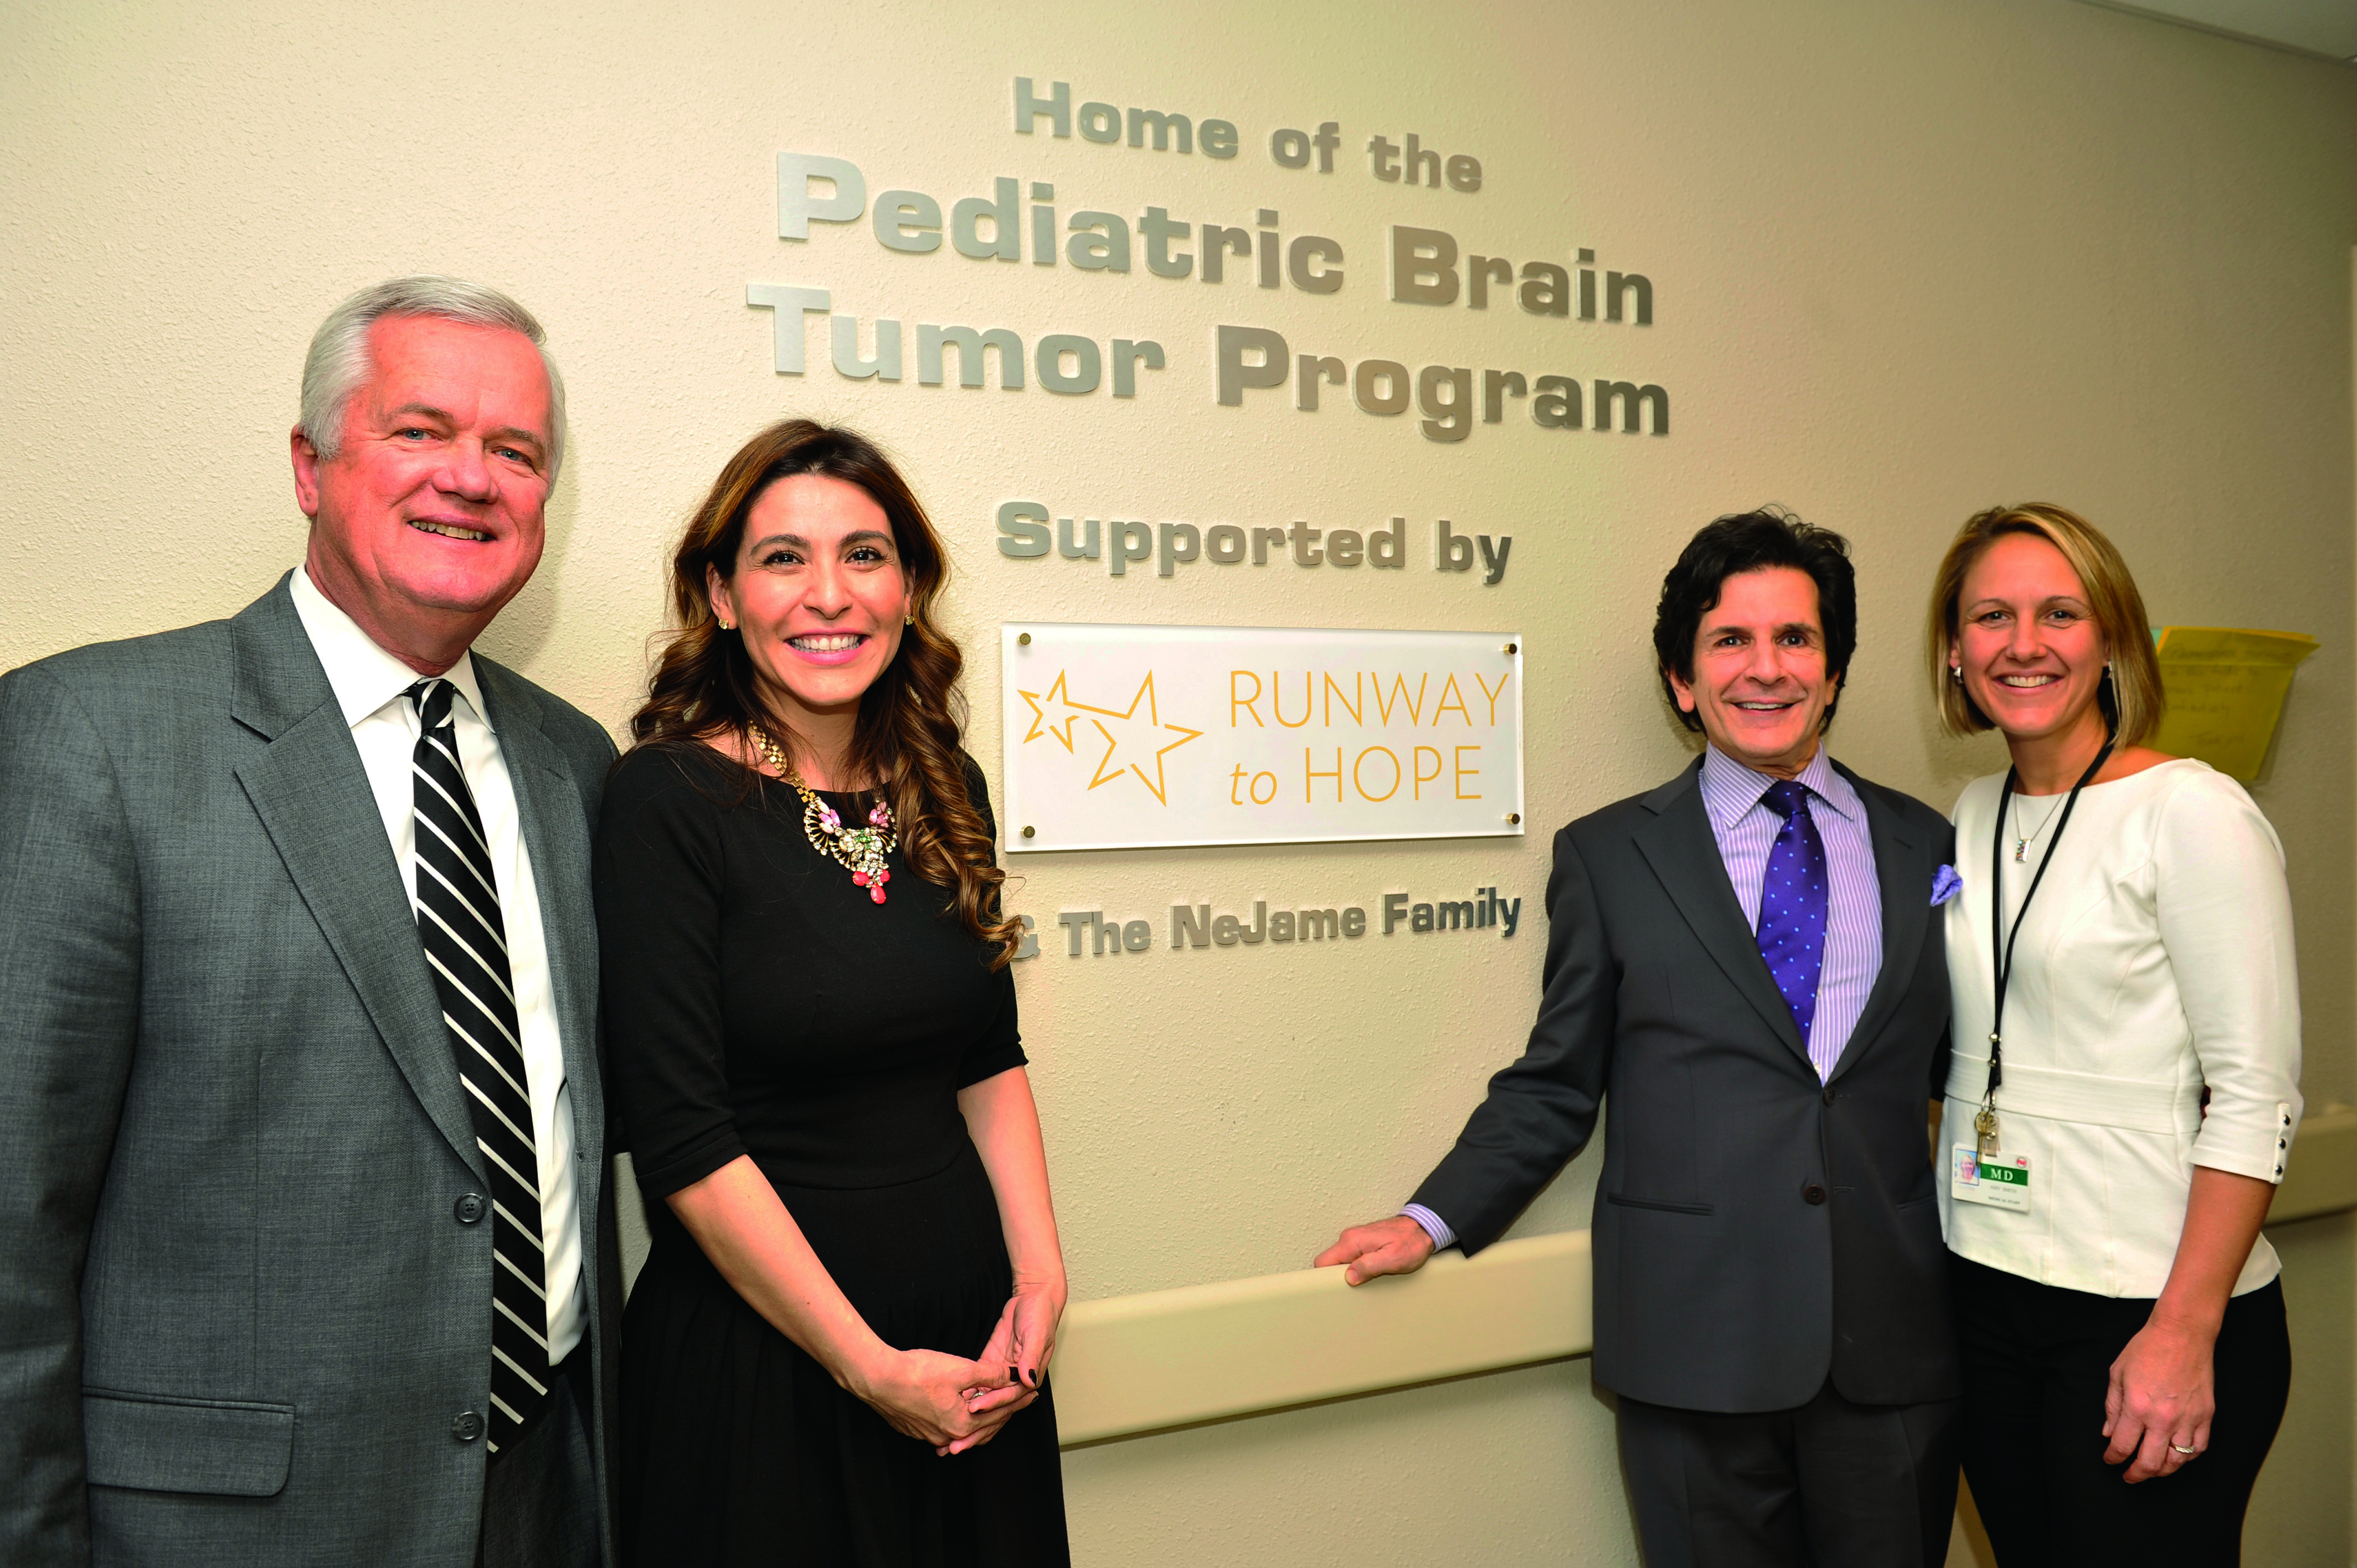 Runway to Hope's Vision for Pediatric Cancer Care: 10 Years of Impact in Central Florida